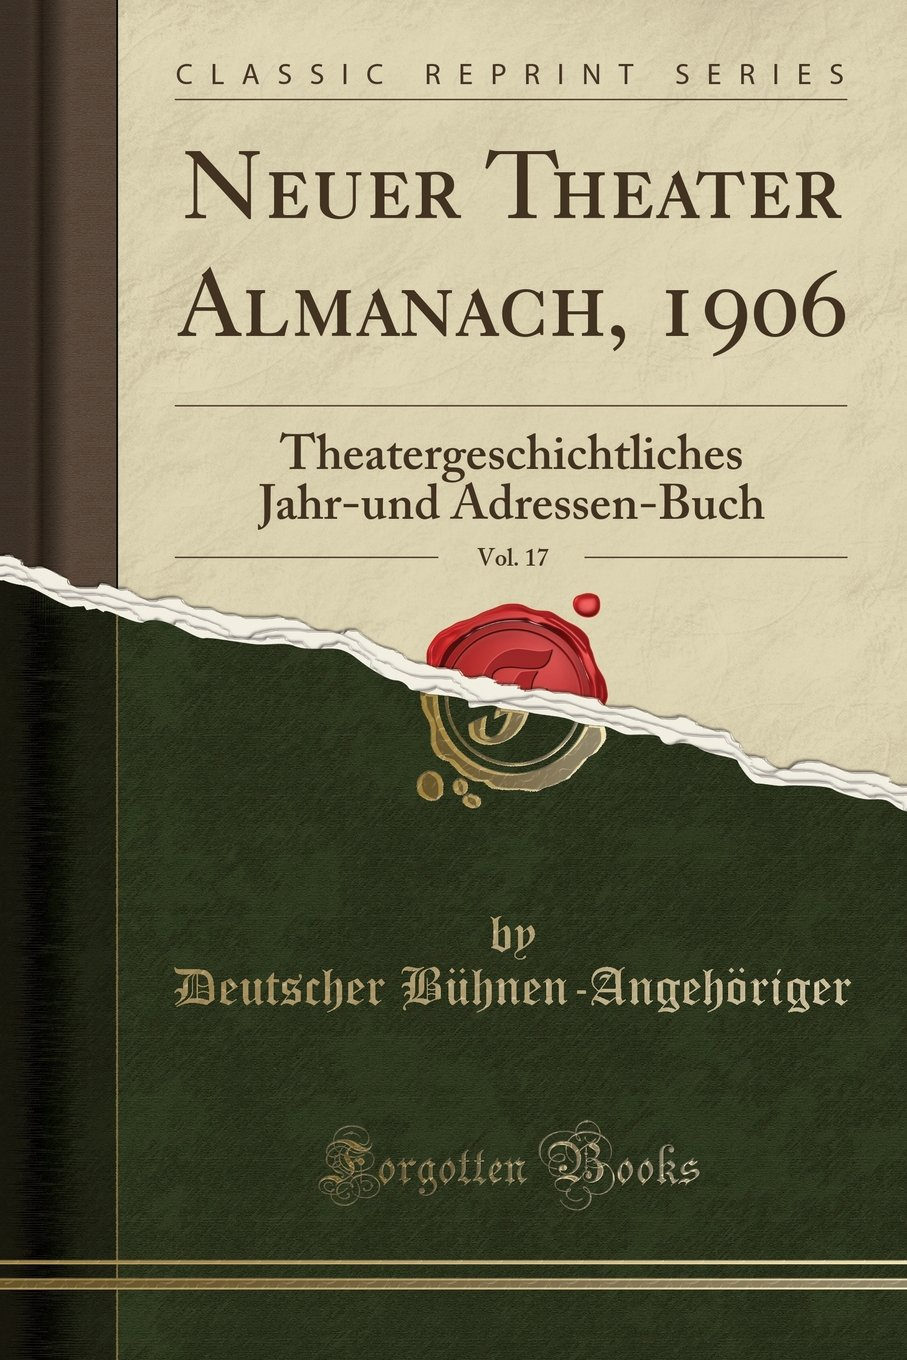 Download Neuer Theater Almanach, 1906, Vol. 17: Theatergeschichtliches Jahr-und Adressen-Buch (Classic Reprint) (German Edition) pdf epub